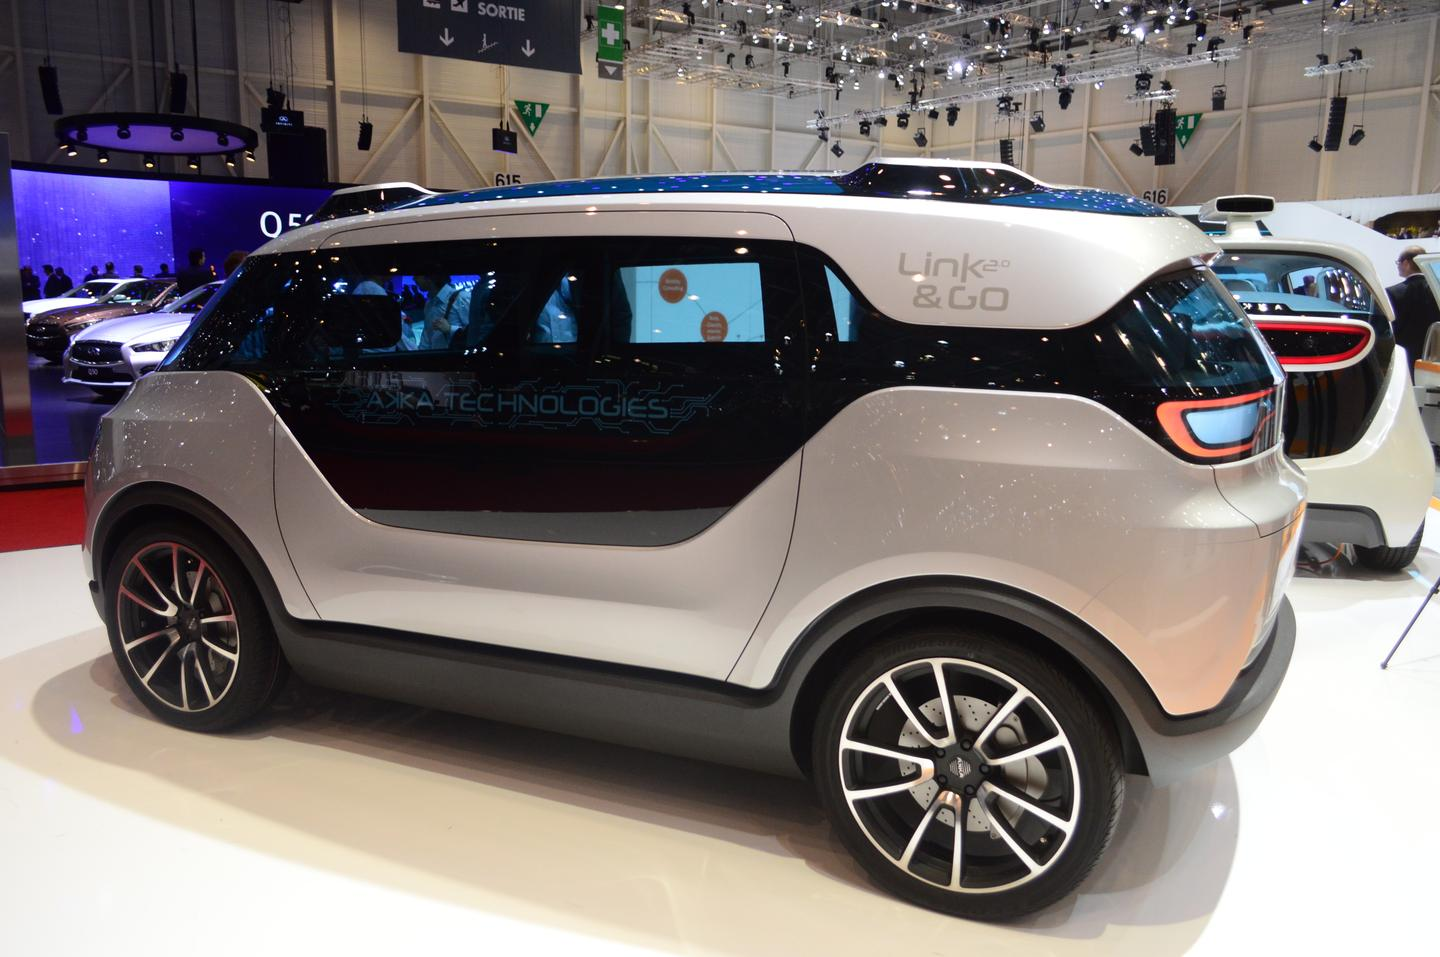 The Link & Go 2.0 debuts at the 2014 Geneva Motor Show